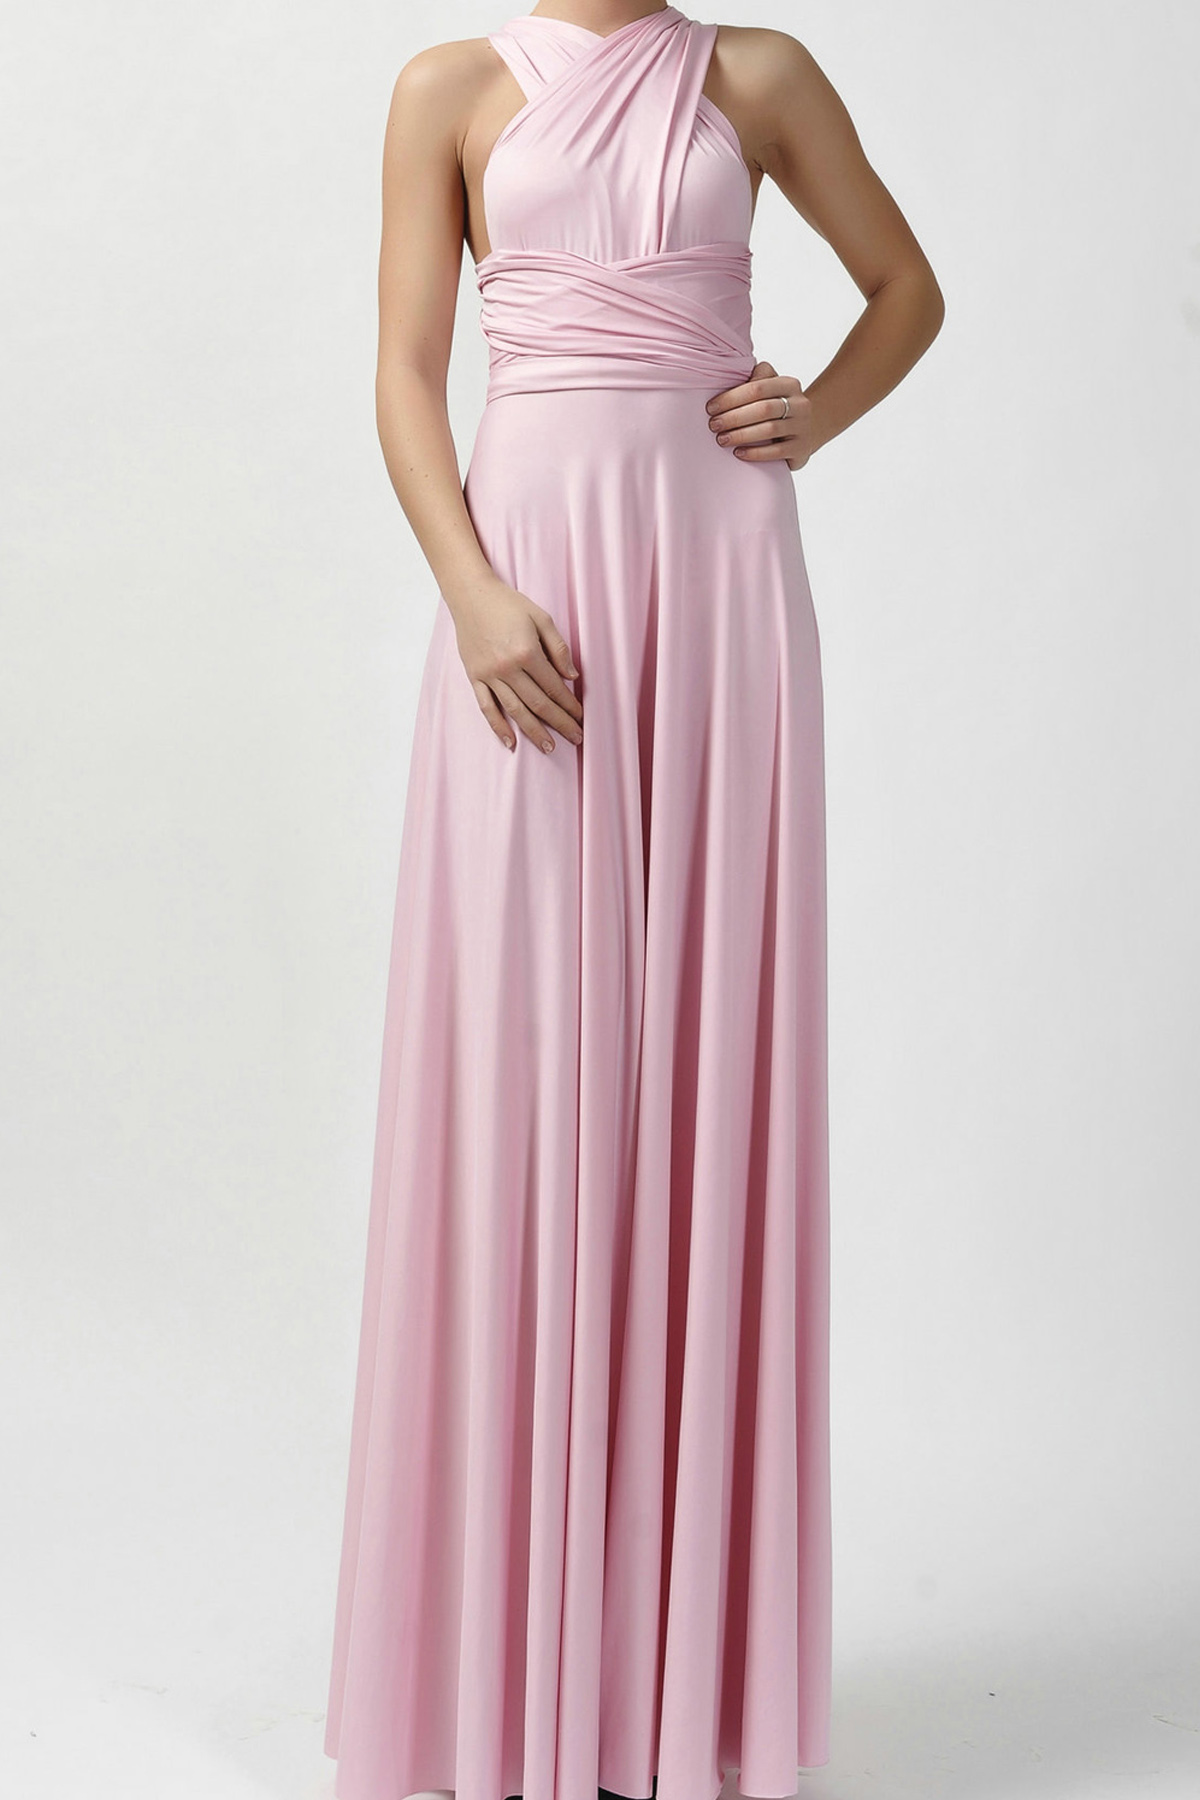 Classique Infinity Dress in Blush Pink